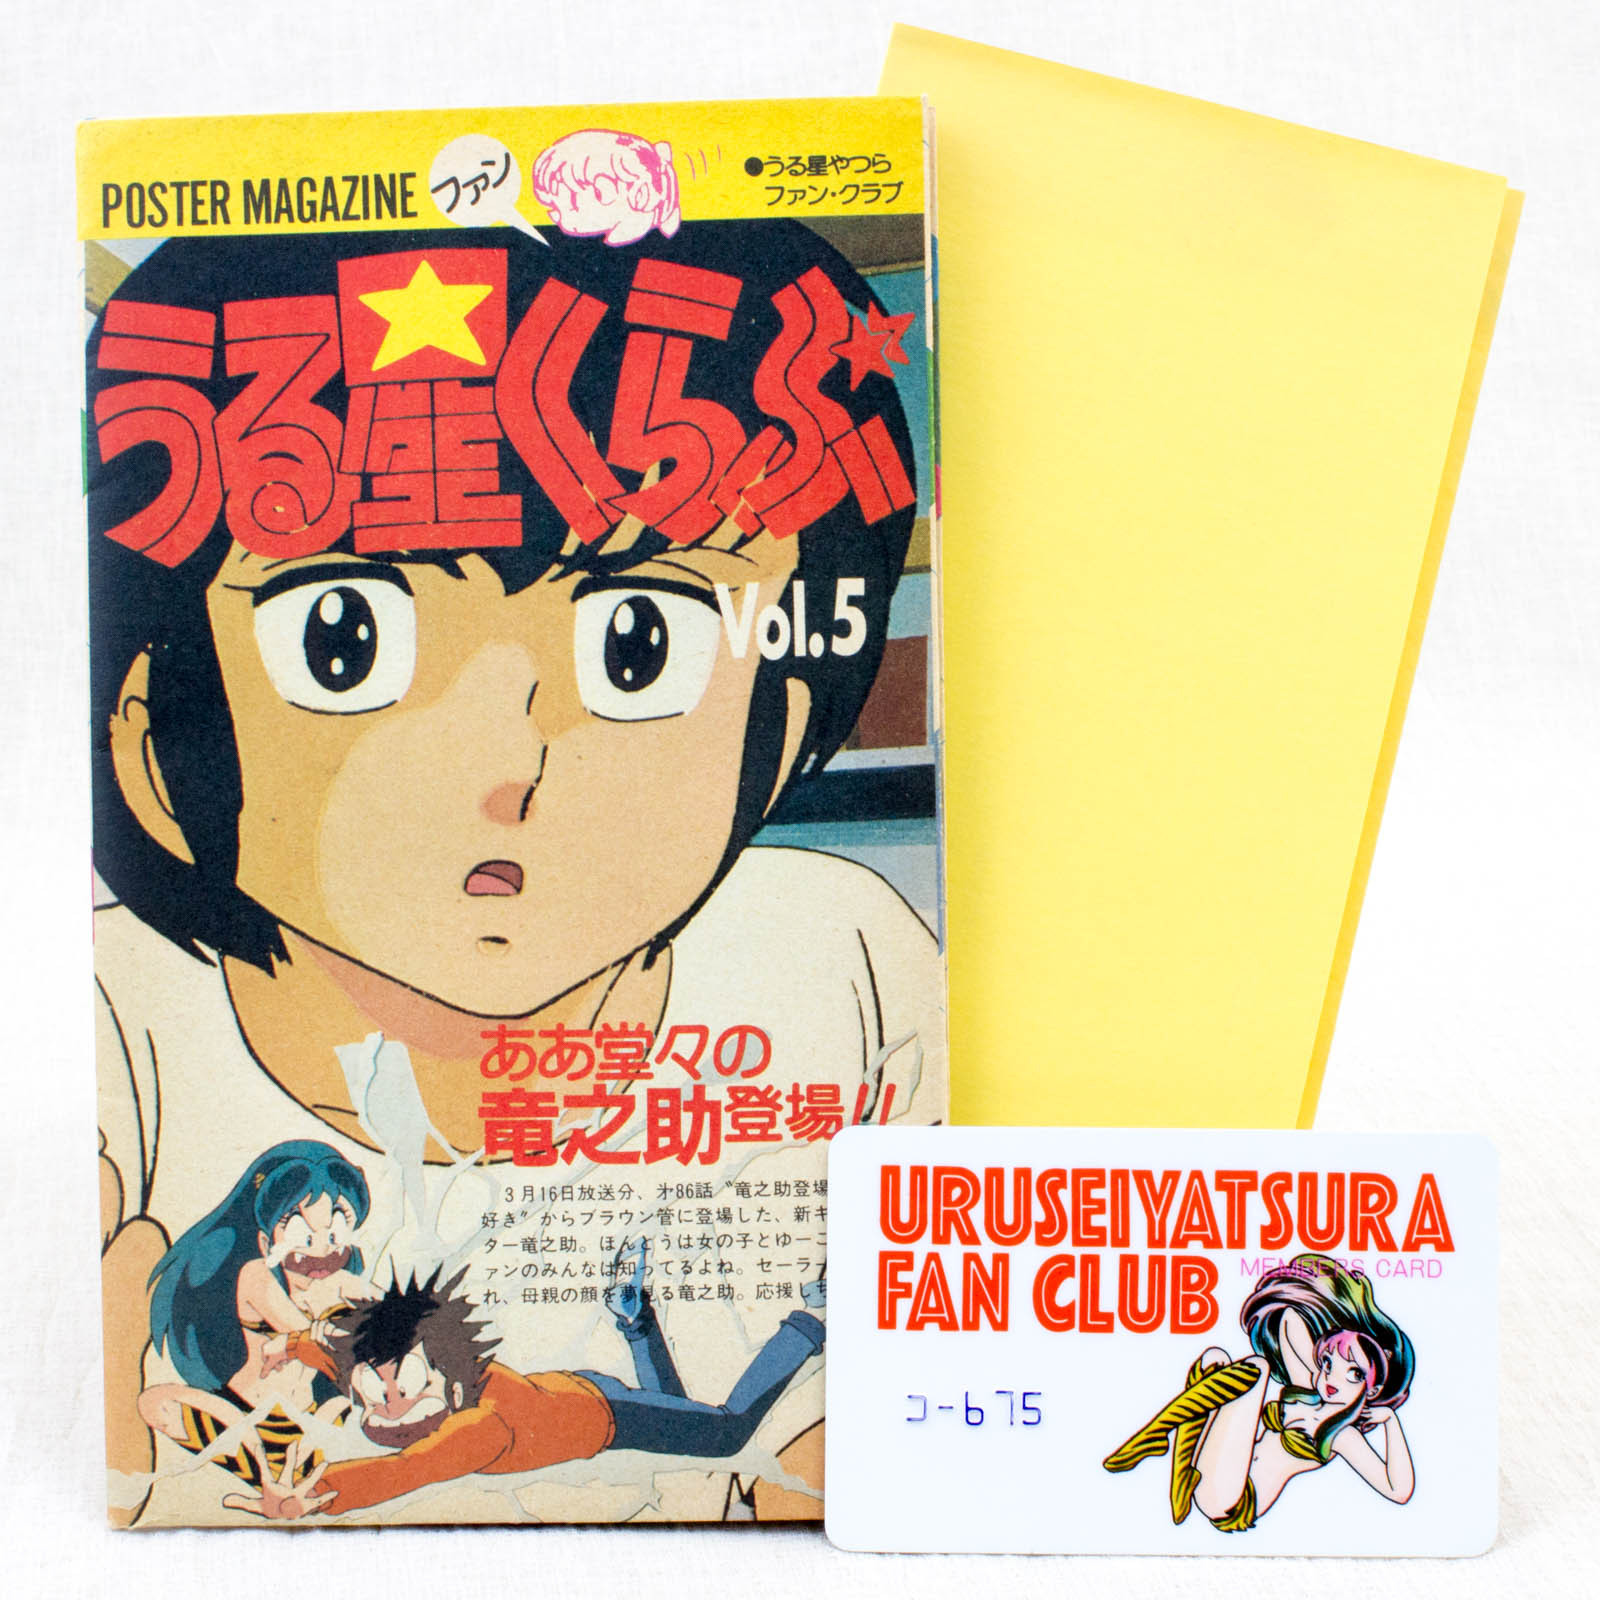 Urusei Yatsura Official Fan Club Member Card & Poster Magazine Vol.05 Set